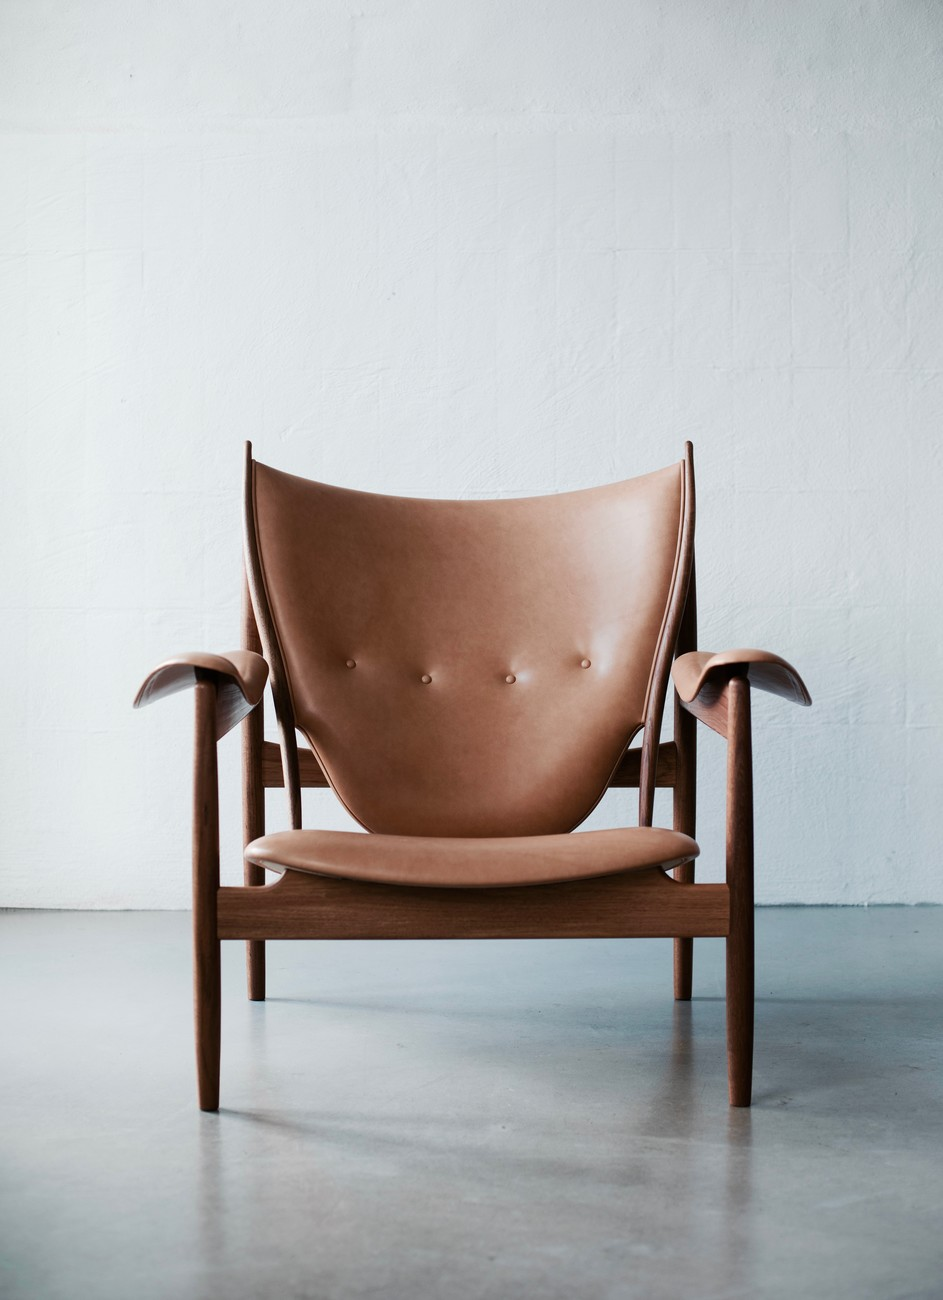 Biennale Interieur - Belgium's leading design and interior event - Hovding-mejeri-n61a7879.jpg